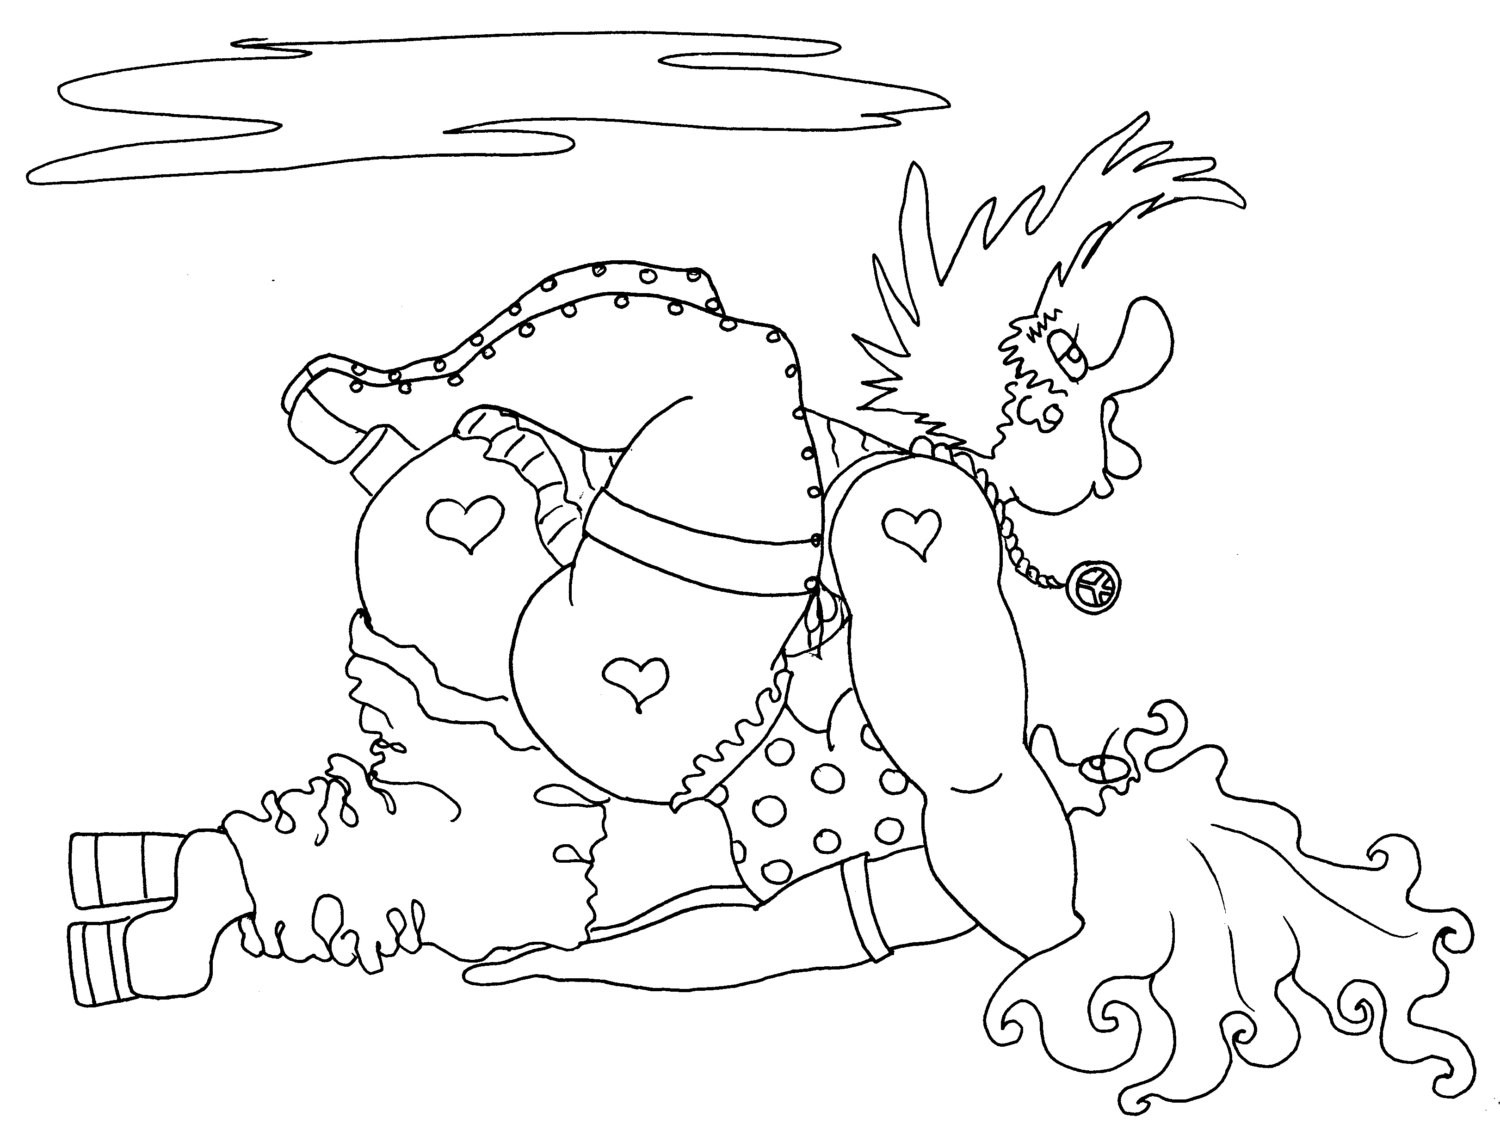 Adult Coloring Books Sex  The Grip a Kama Sutra y Adult Coloring Page from the